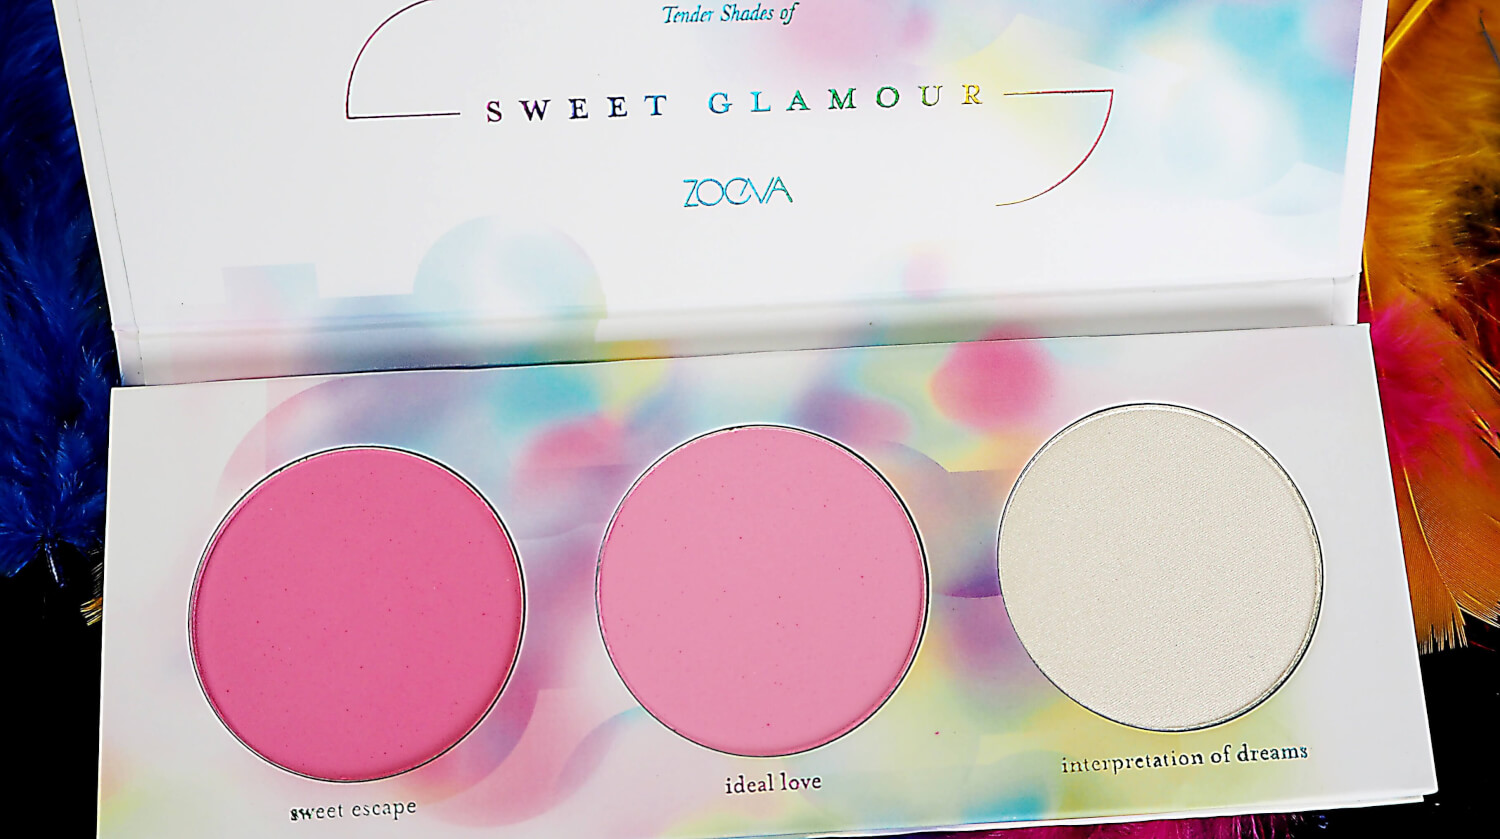 ZOEVA SWEET GLAMOUR COLLECTION palette róży